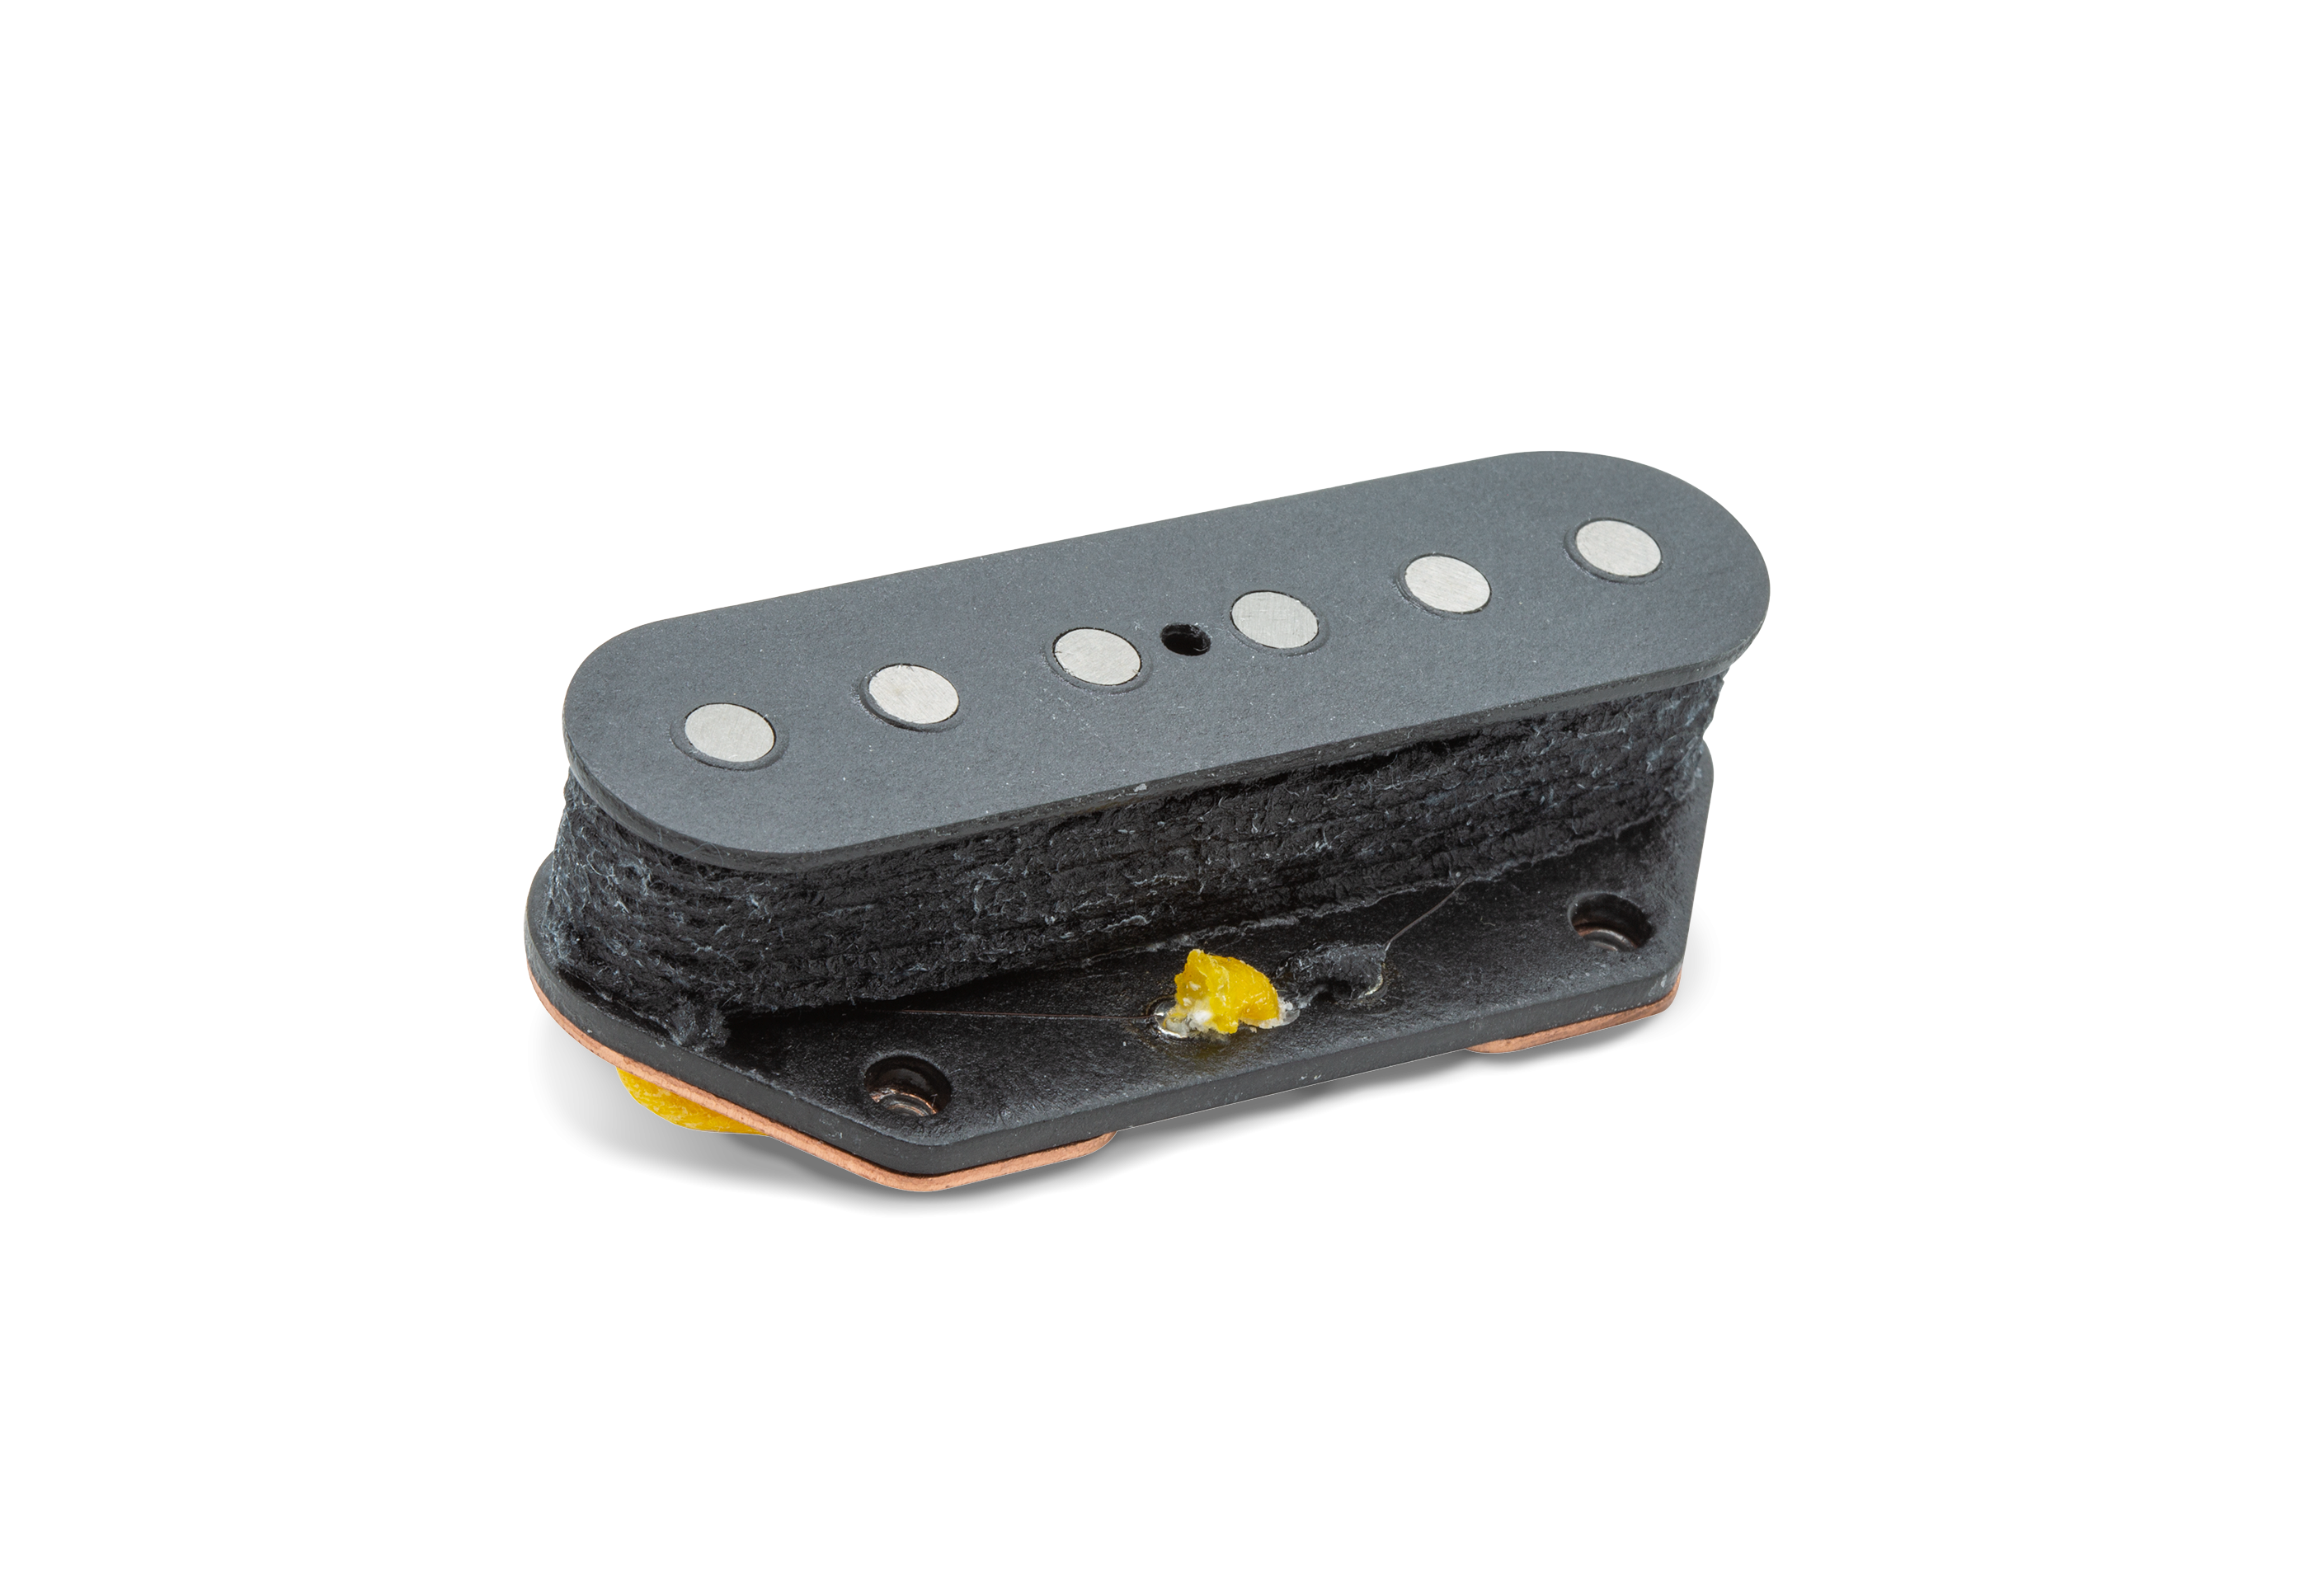 Seymour Duncan Antiquity Retrospec'd Tele - Bridge